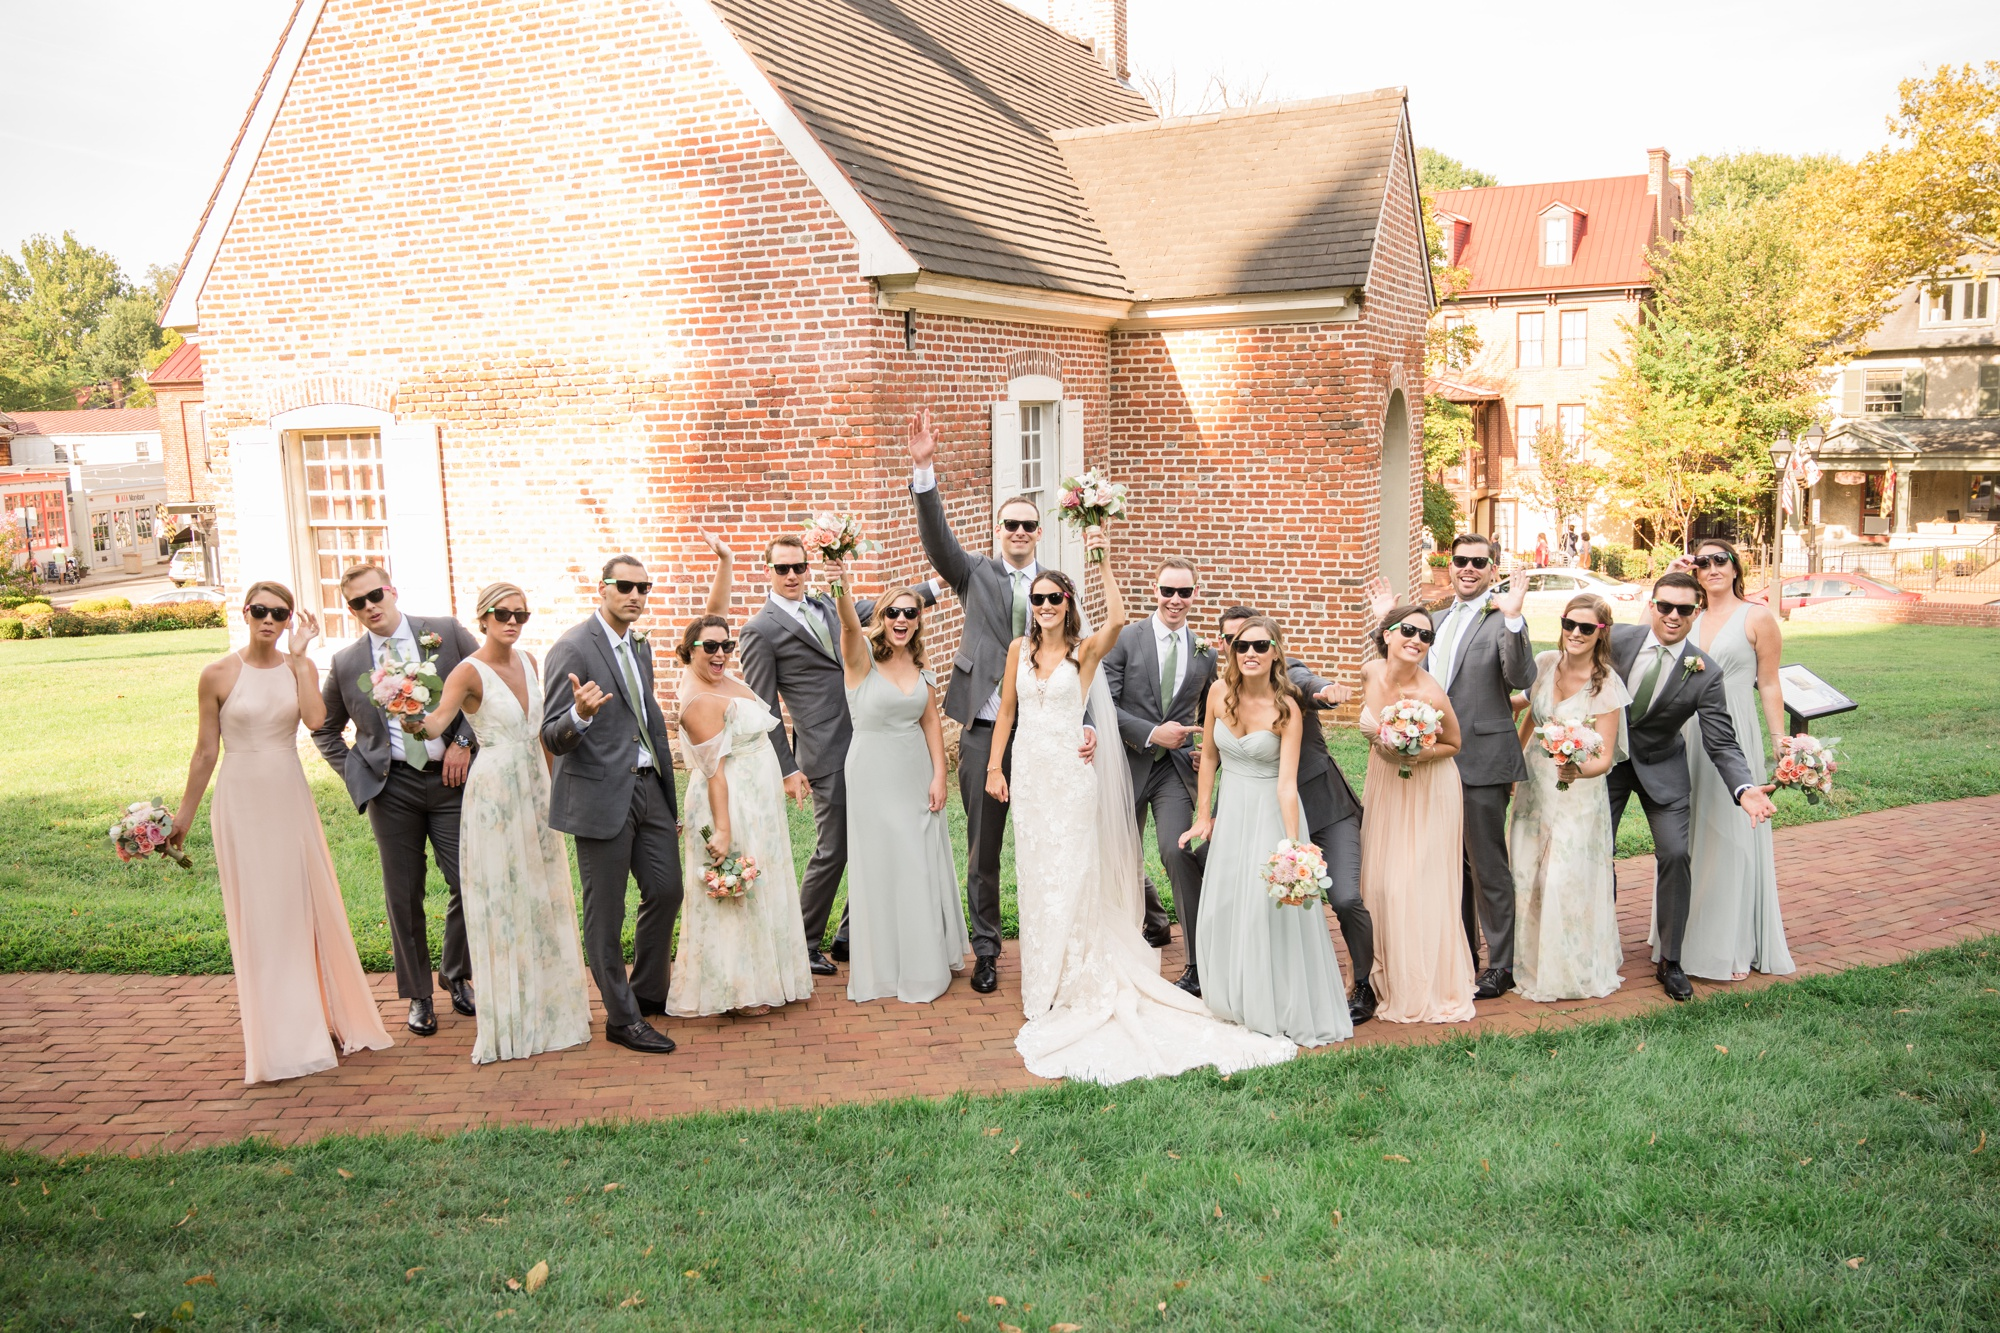 Historic Inns of Annapolis wedding party photos